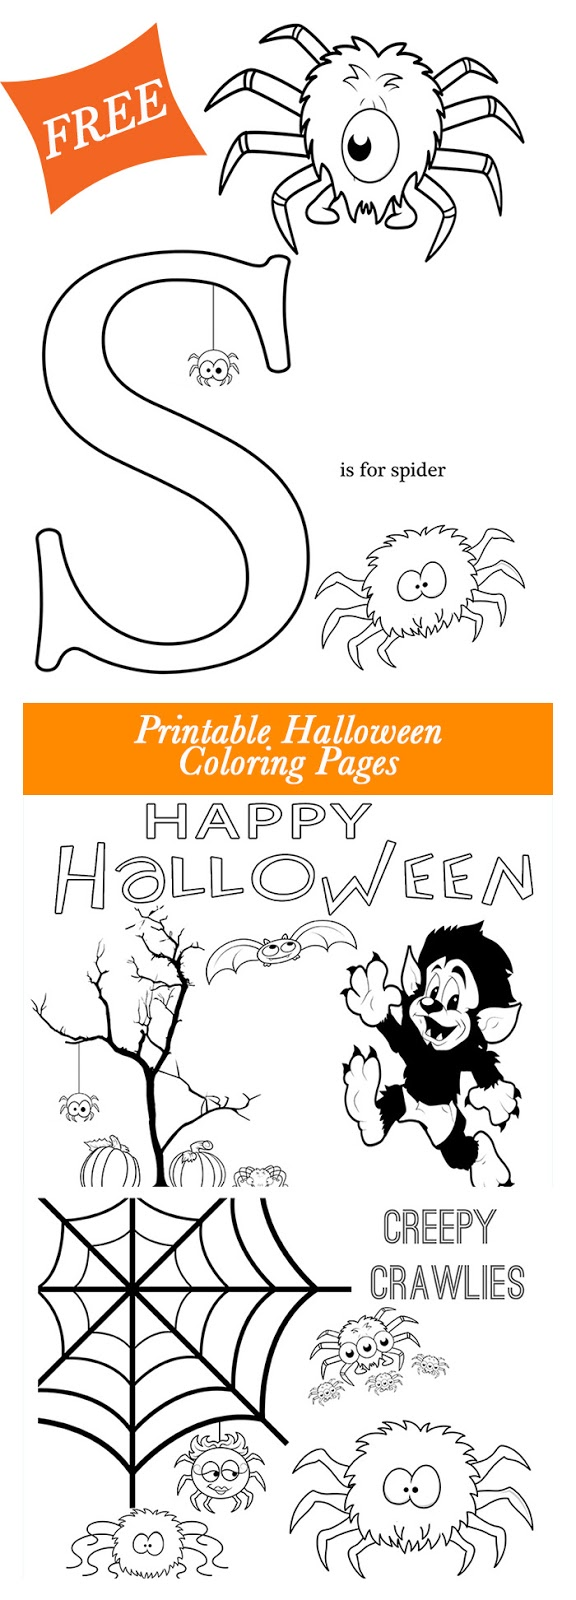 Printable coloring pages for halloween - Get These Free Halloween Printable Coloring Pages From Major Hoff Takes A Wife Super Cute